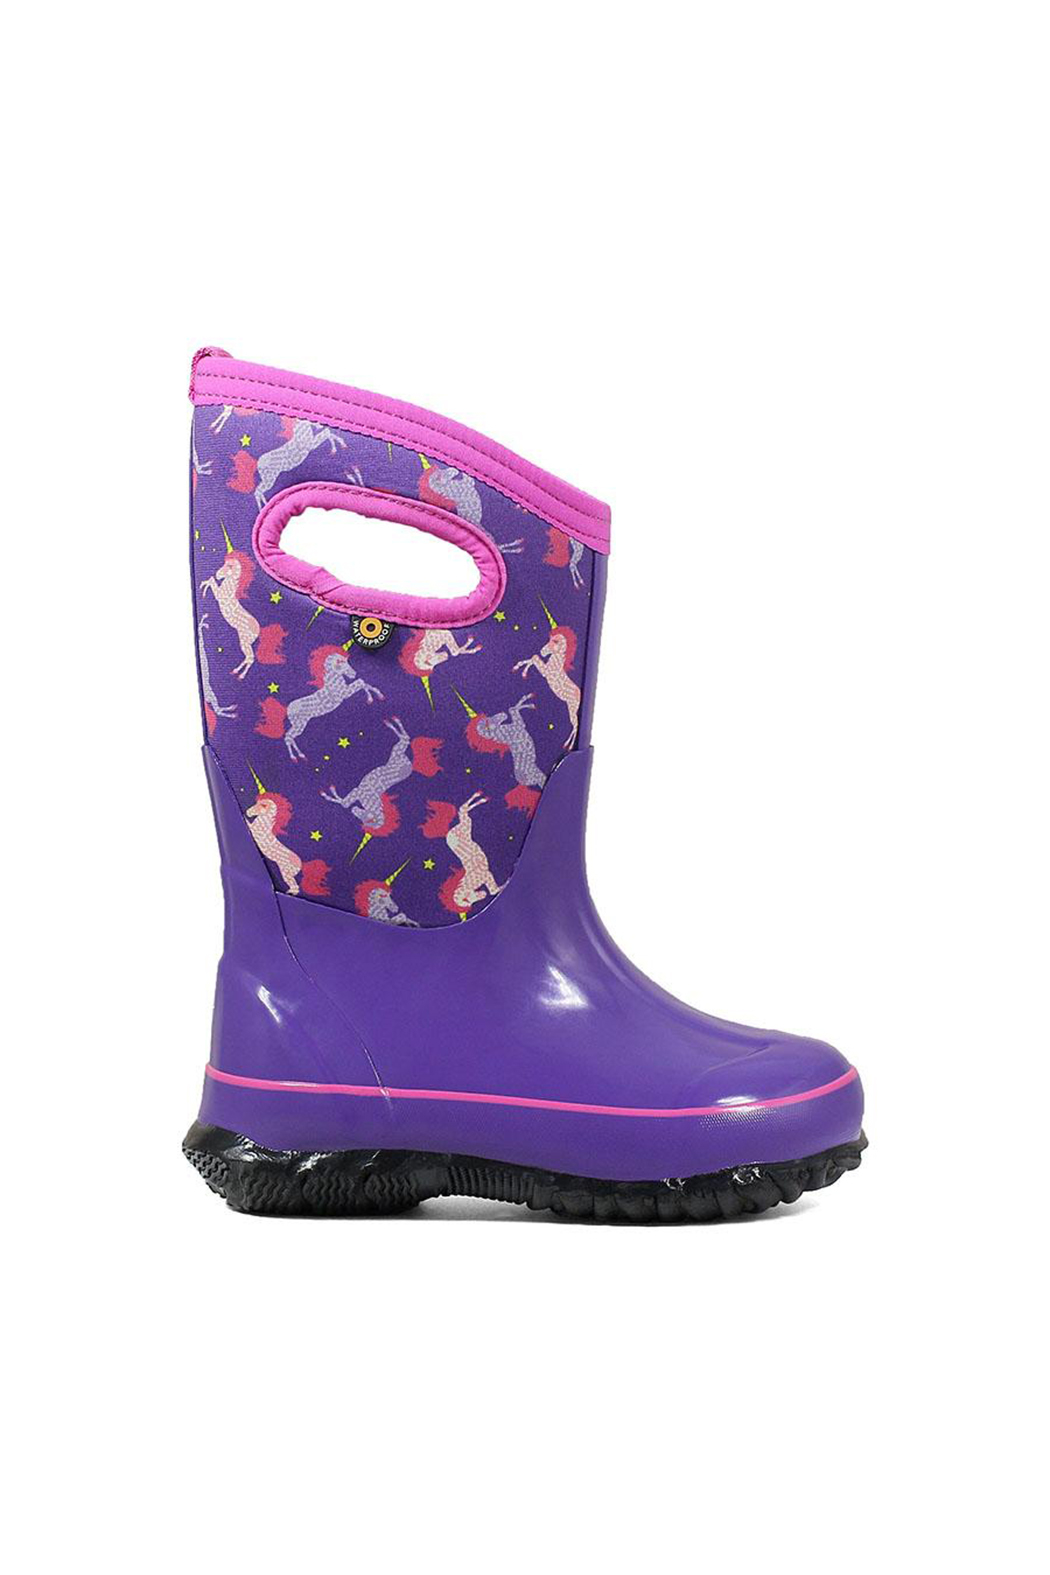 BOGS Classic Unicorn Kids Insulated Boots - Main Image